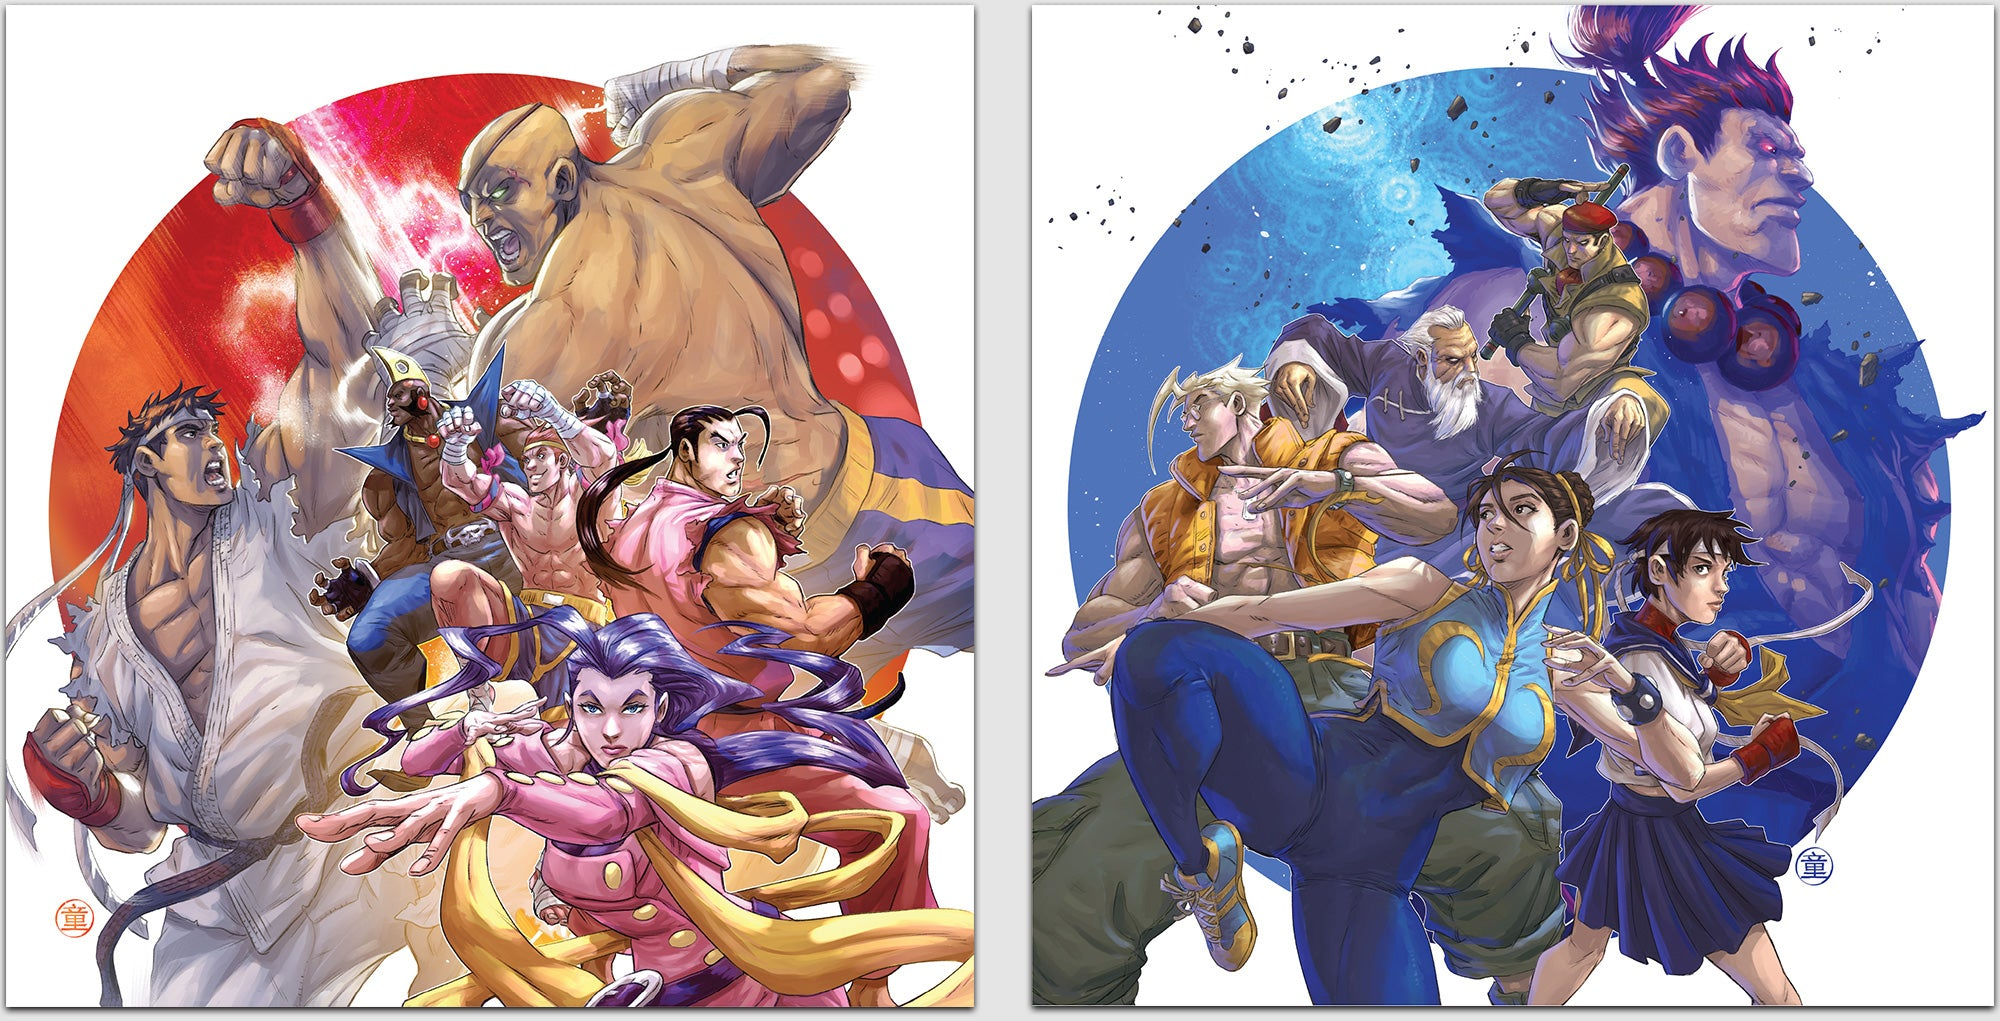 the front covers for both the Street Fighter Alpha: Warriors' Dreams and Alpha 2 double LP vinyl set